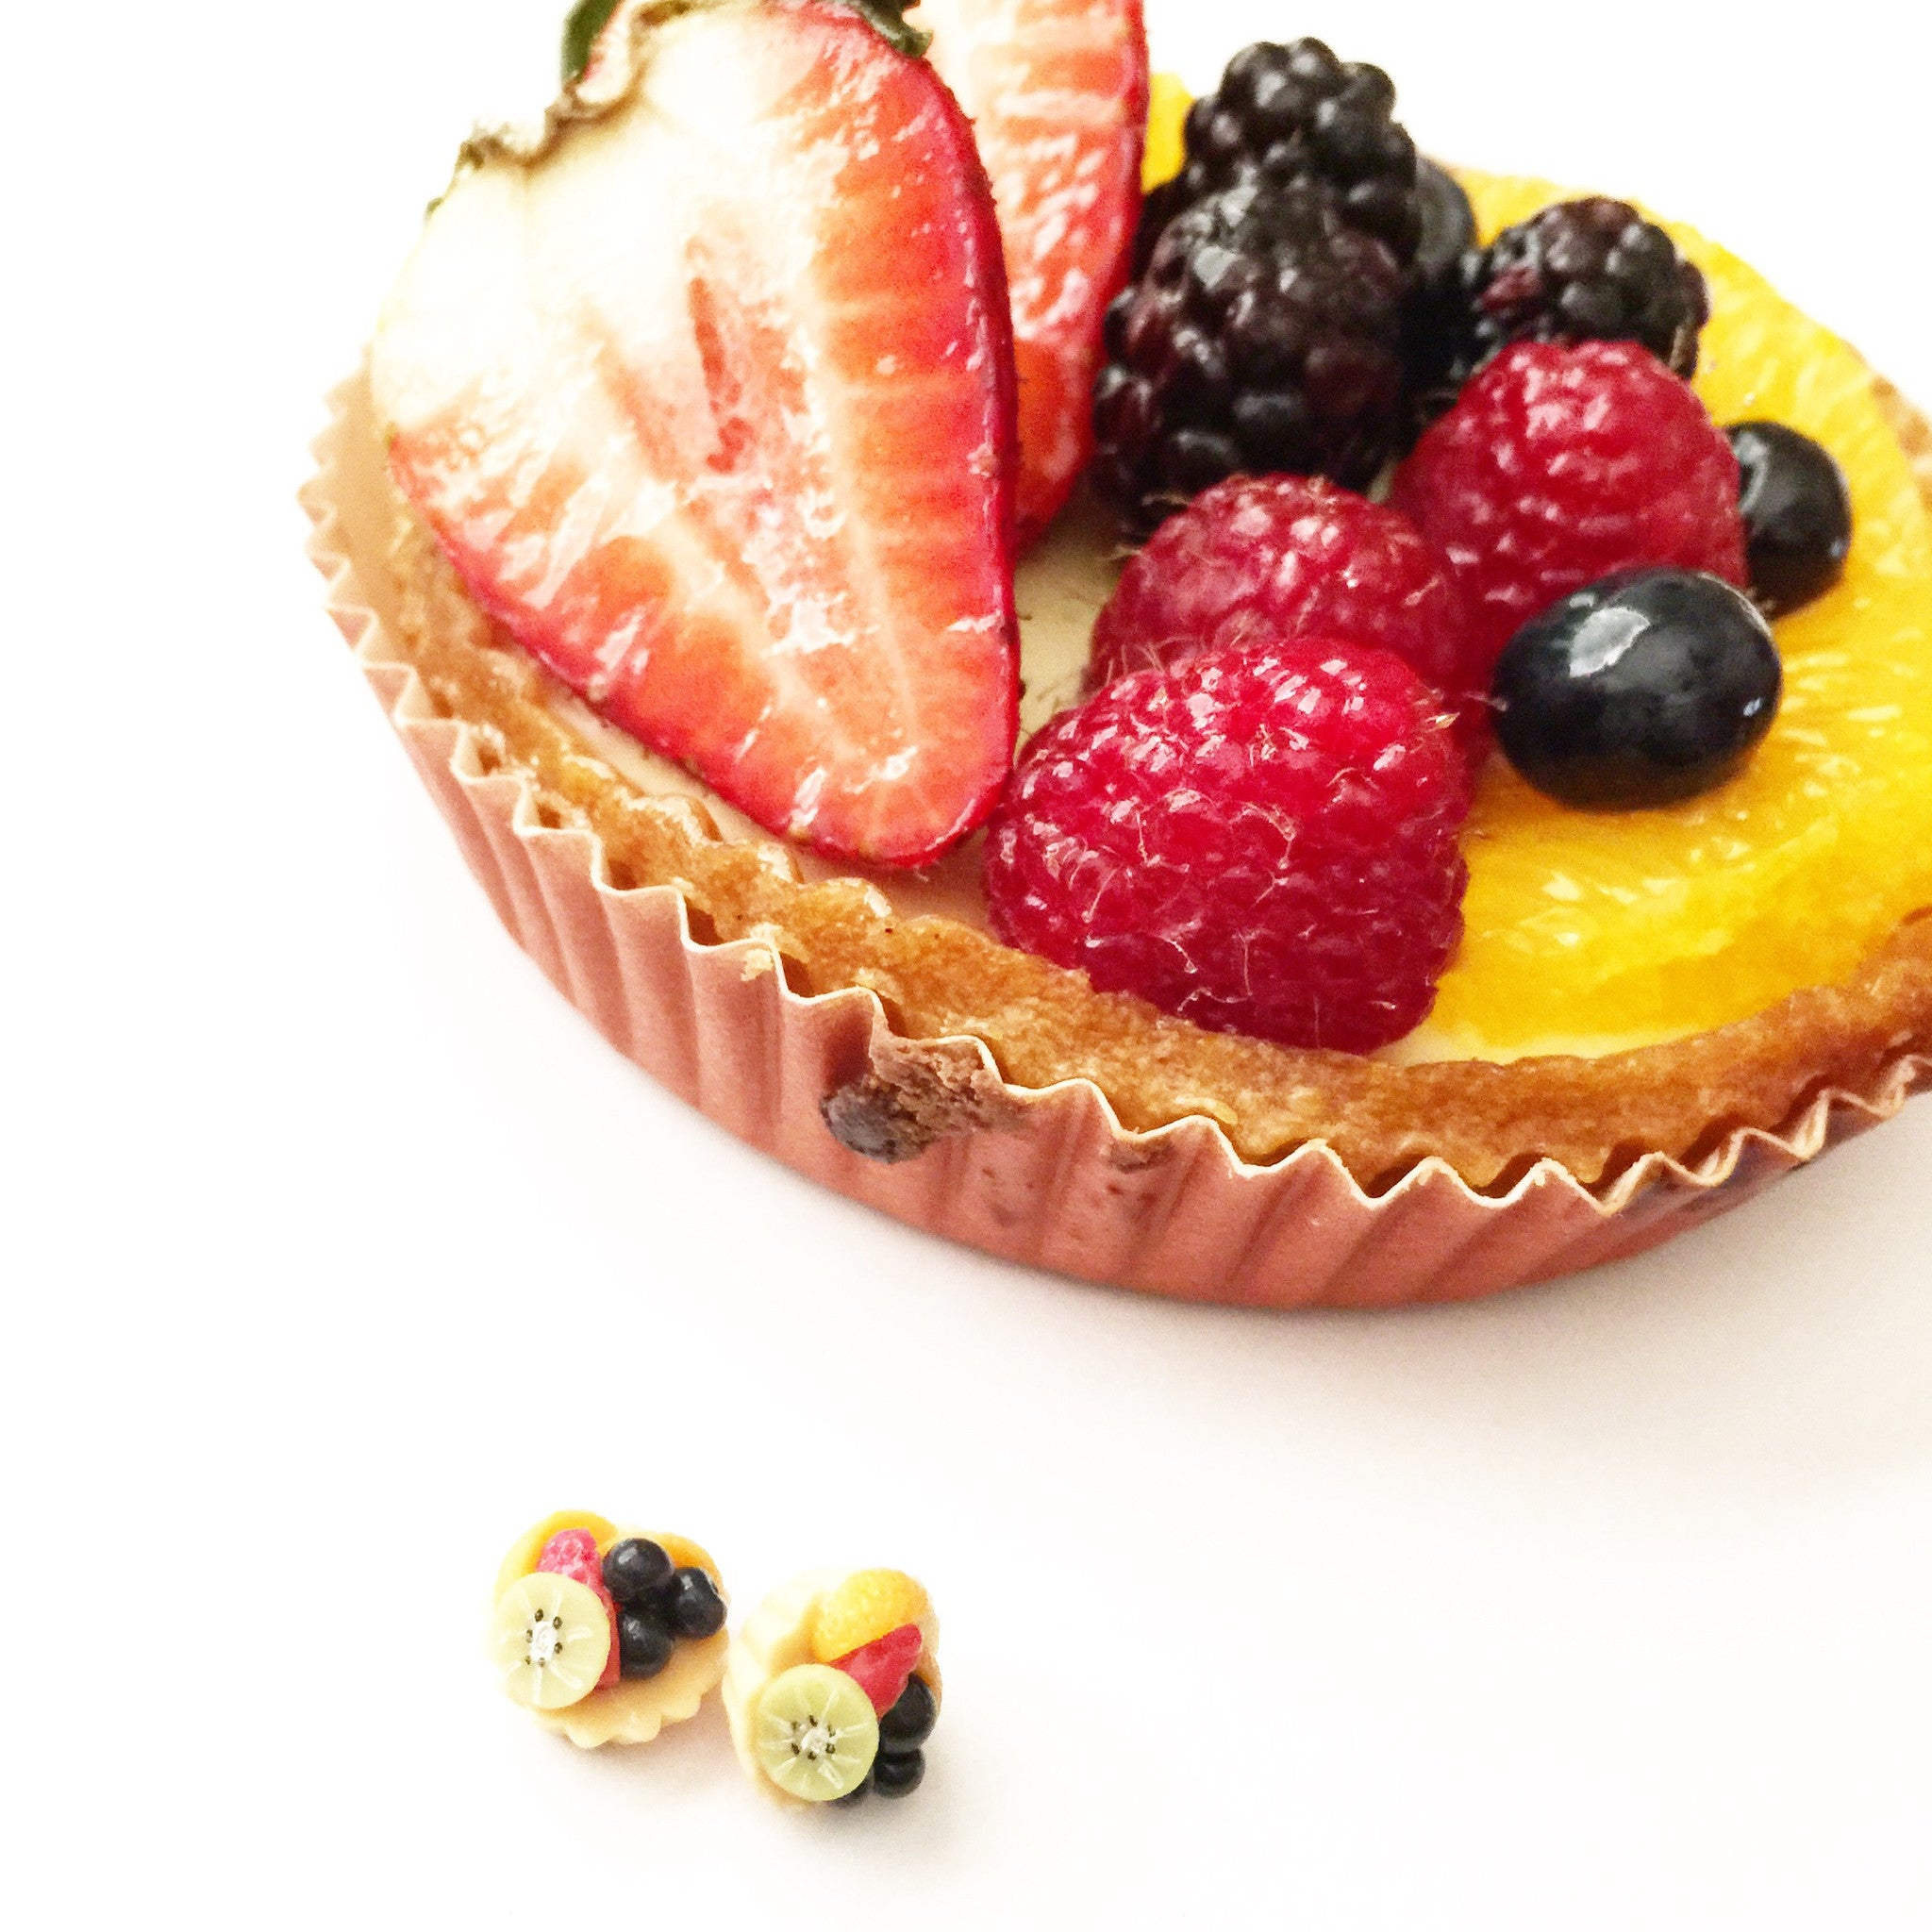 fruit tart earrings - Jillicious charms and accessories - 5